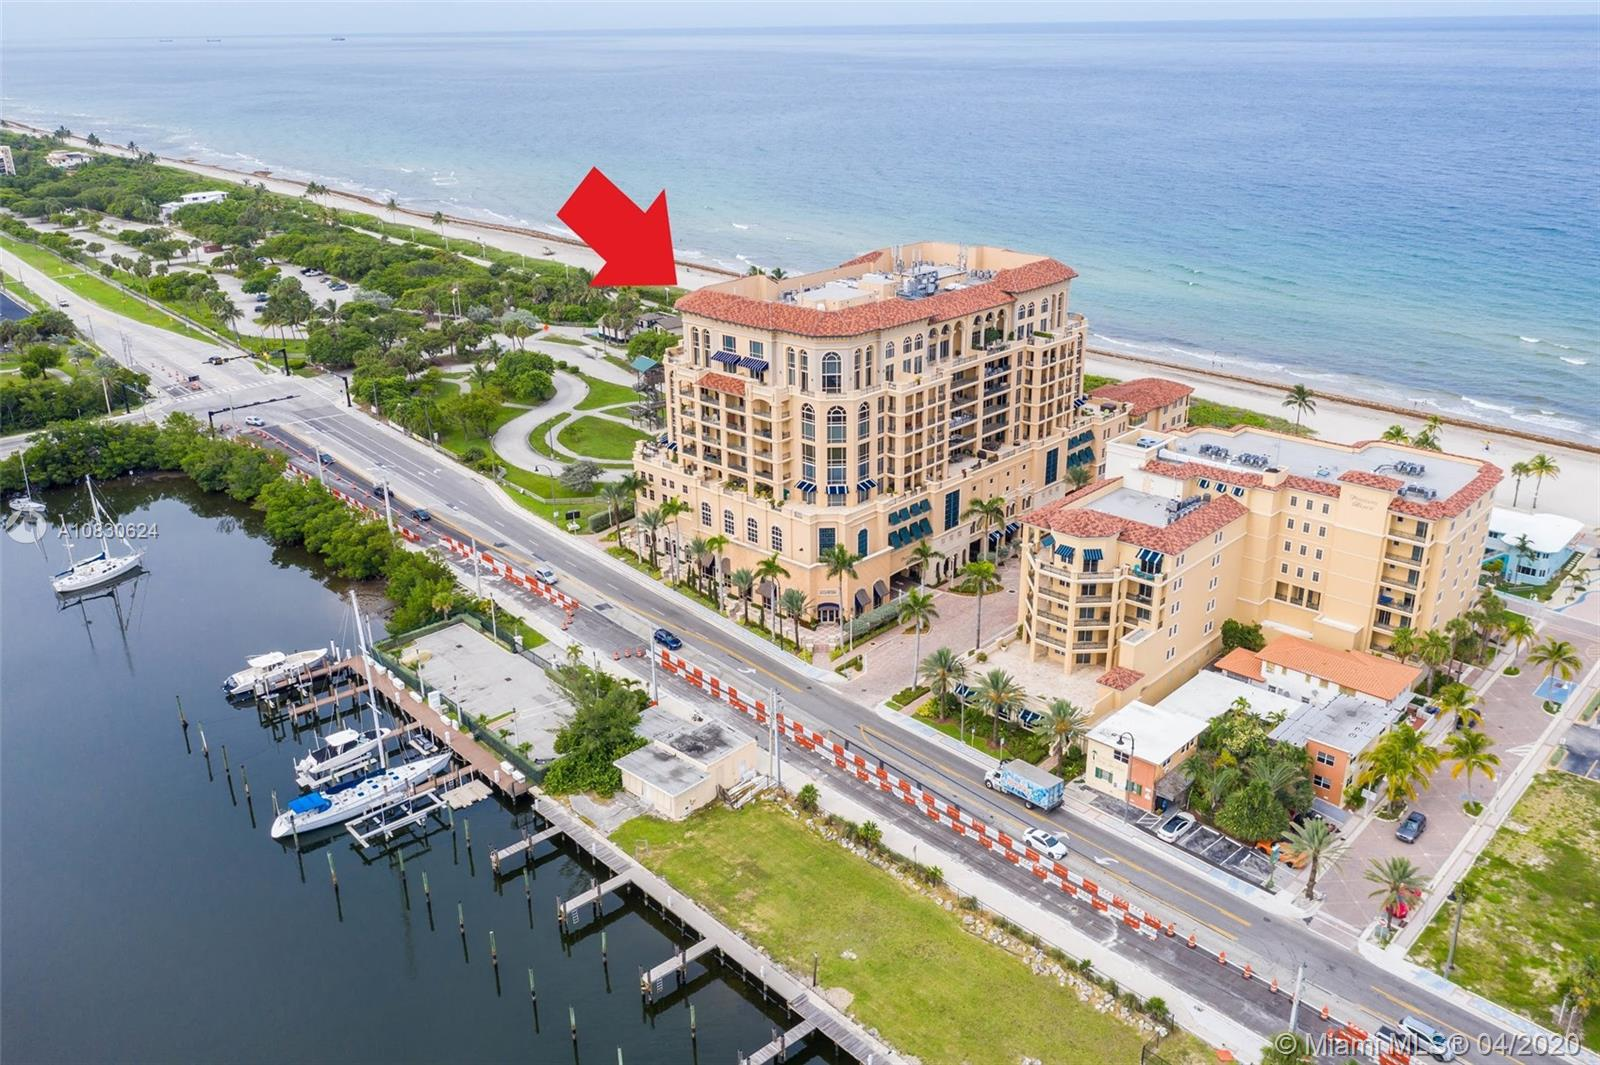 This spectacular apartment has the BEST, PRIVILEGED and PRIVATE, NORTH SIDE location  of this stunning Mediterranean Style building on the Beach, with AMAZING, UNIQUE, PRIVATE and UNINTERRUPTED VIEWS to the OCEAN, INTRACOASTAL and PARK. You can enjoy all these views from relaxing on any of your beds, living sofas or just sitting down in the EXTENDED COVERED and UNCOVERED TERRACE with approximately 1,000 Sf, with direct access from each bedroom and living-dining areas to the huge terrace,  This luxury apartment is one of a kind unit. The moment you see it, you will NEED to have it!